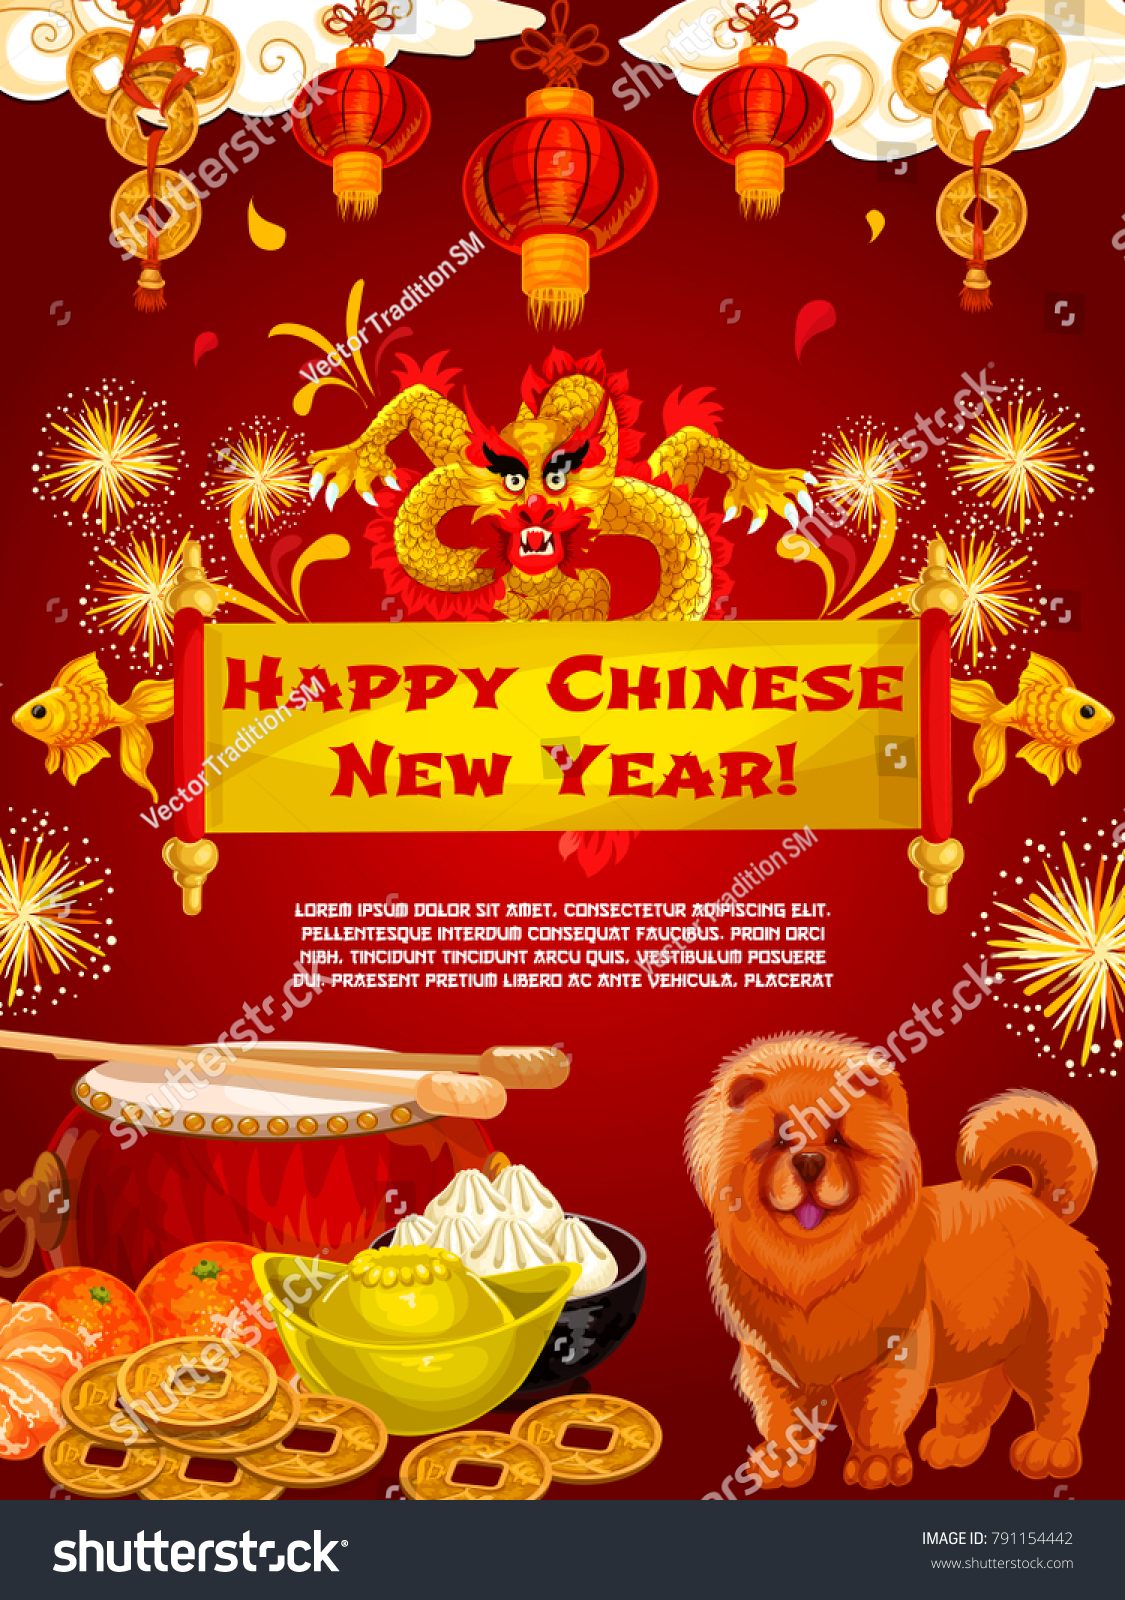 Chinese New Year Of Yellow Dog 2018 Greeting Card Of Golden Dragon